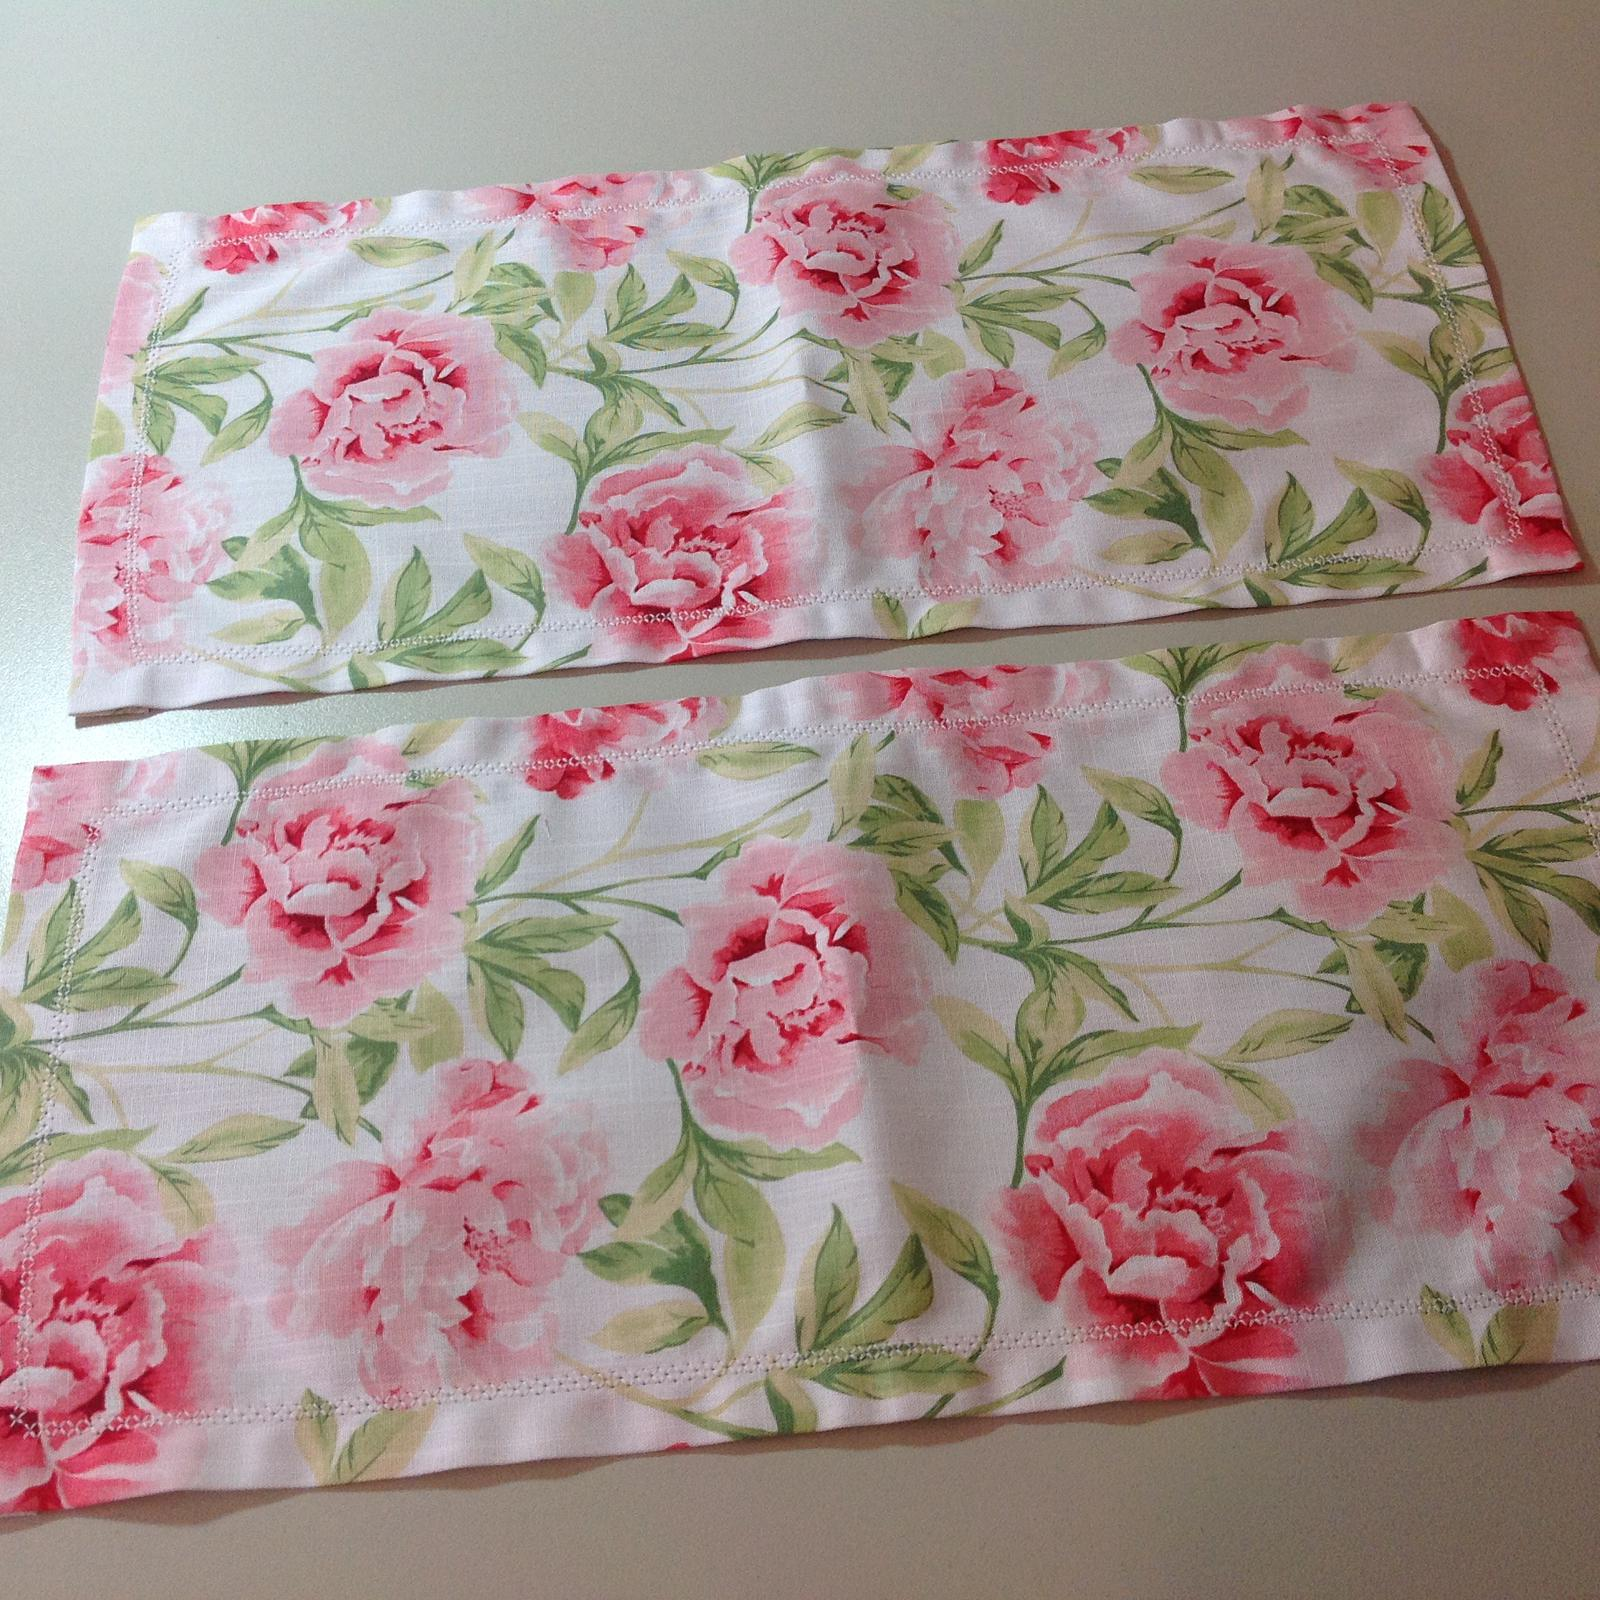 Hemstitched table runners